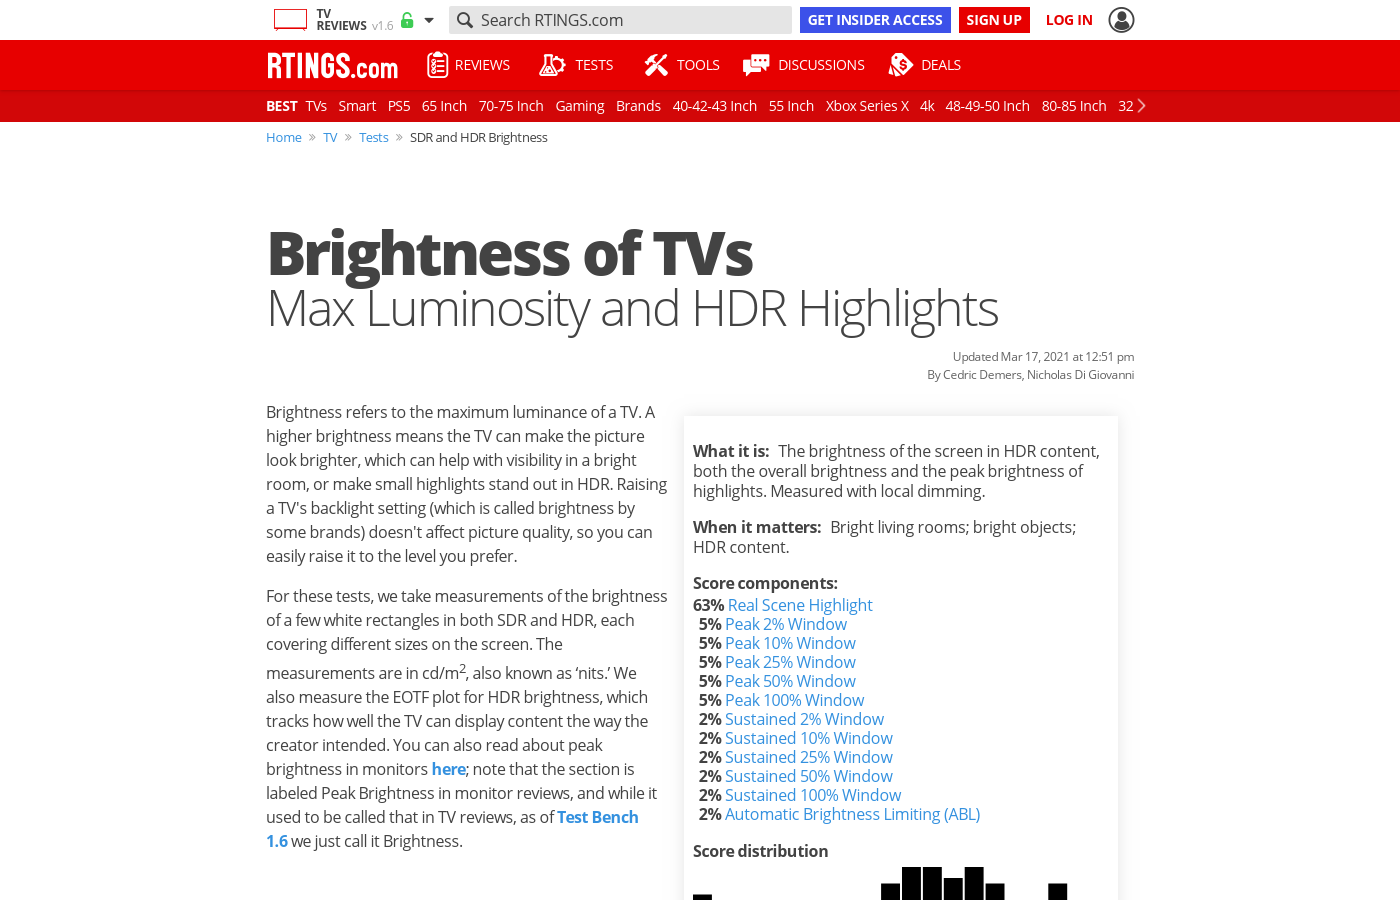 Peak Brightness of TVs: Max luminosity and HDR highlights